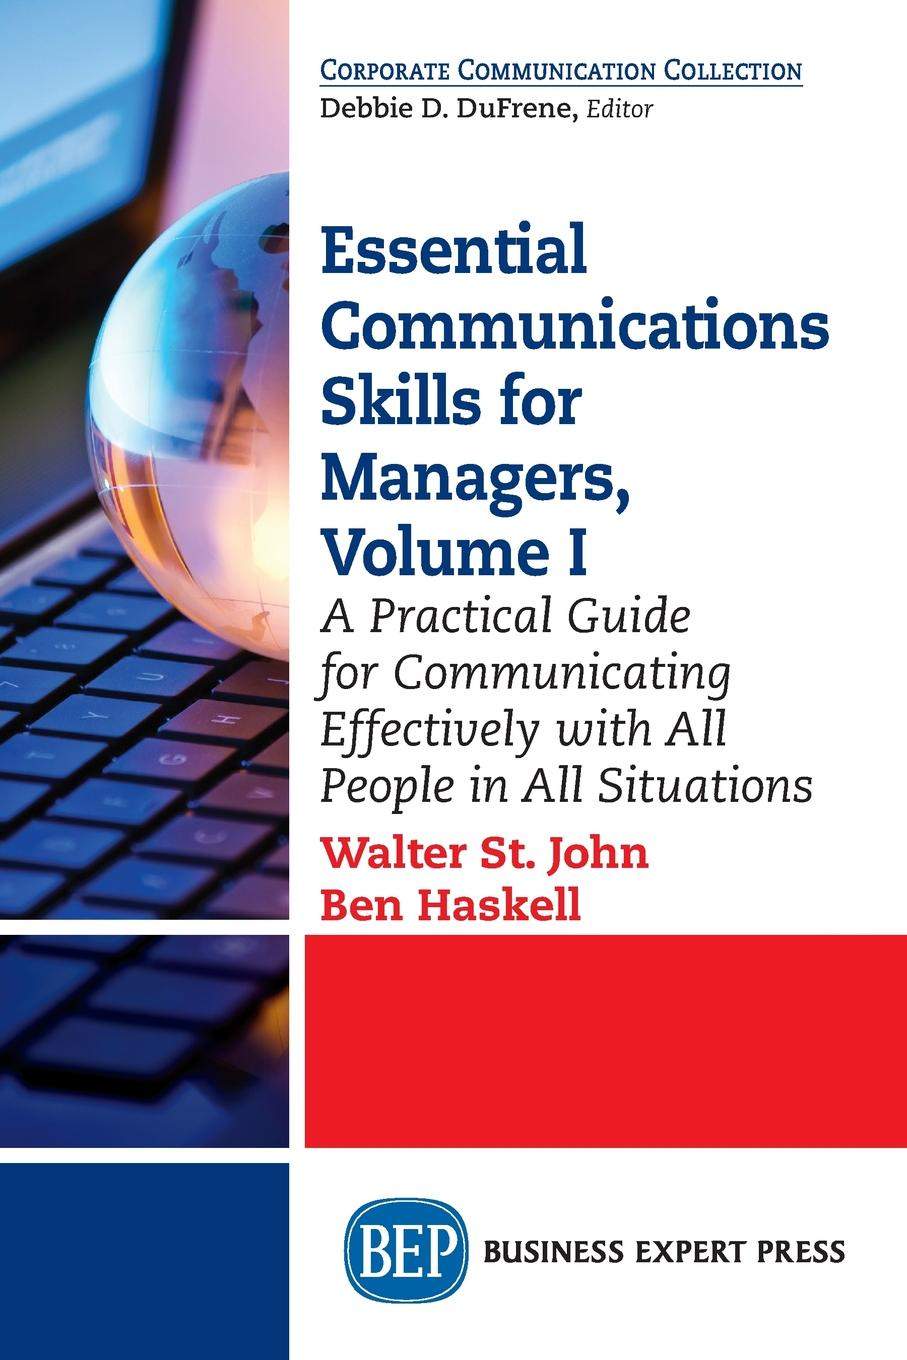 Walter St. John, Ben Haskell Essential Communications Skills for Managers, Volume I. A Practical Guide for Communicating Effectively with All People in All Situations